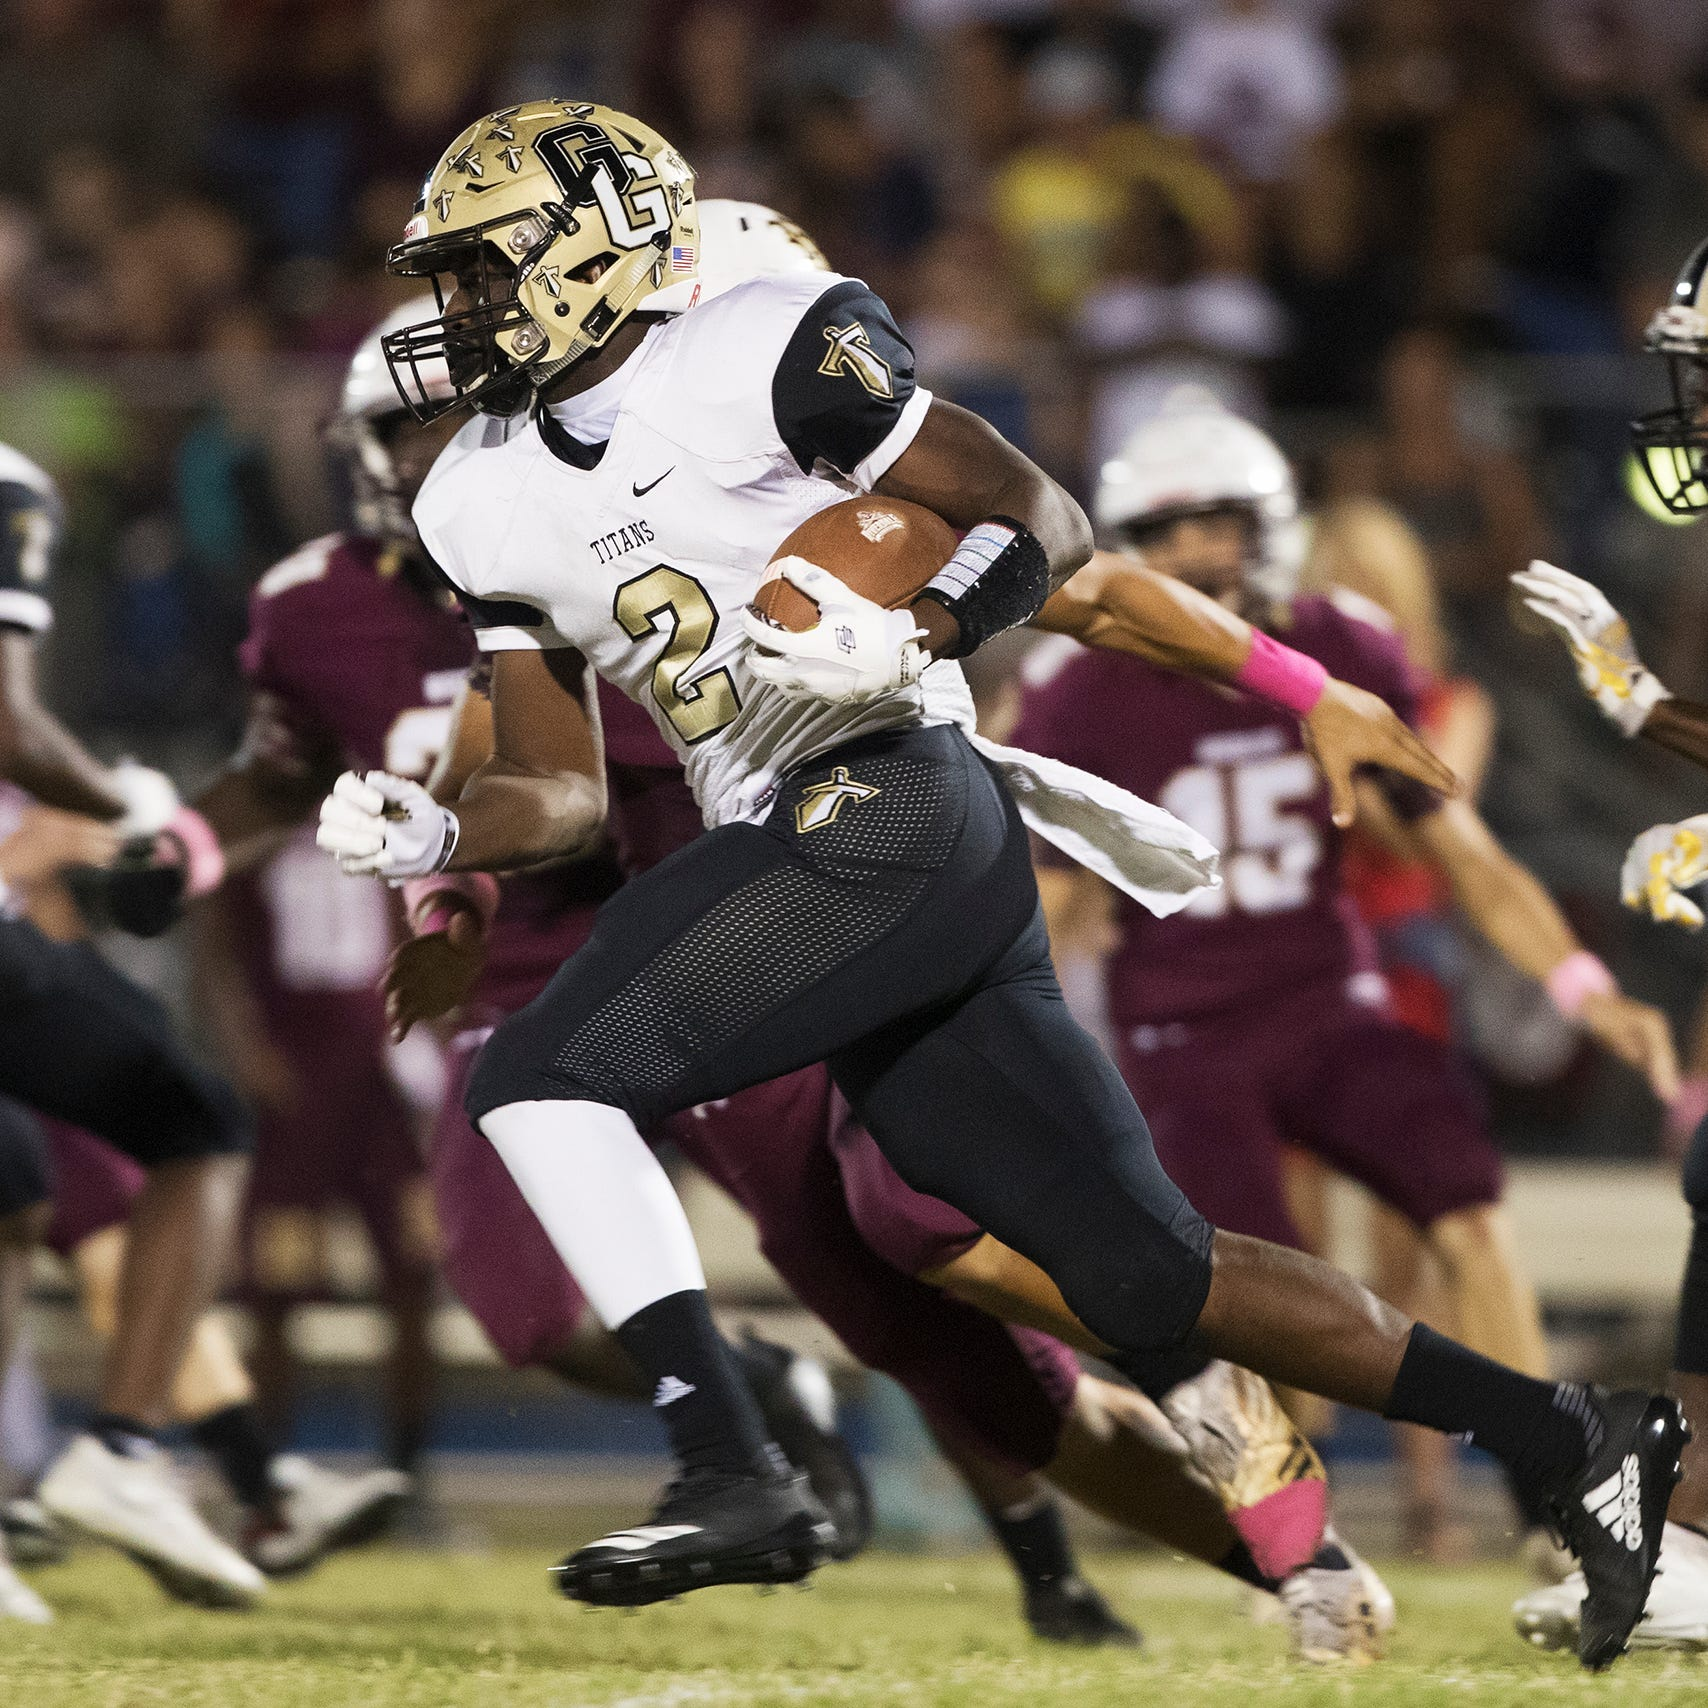 SWFL High School football: Scores, photos, videos for Week 9 of the regular season